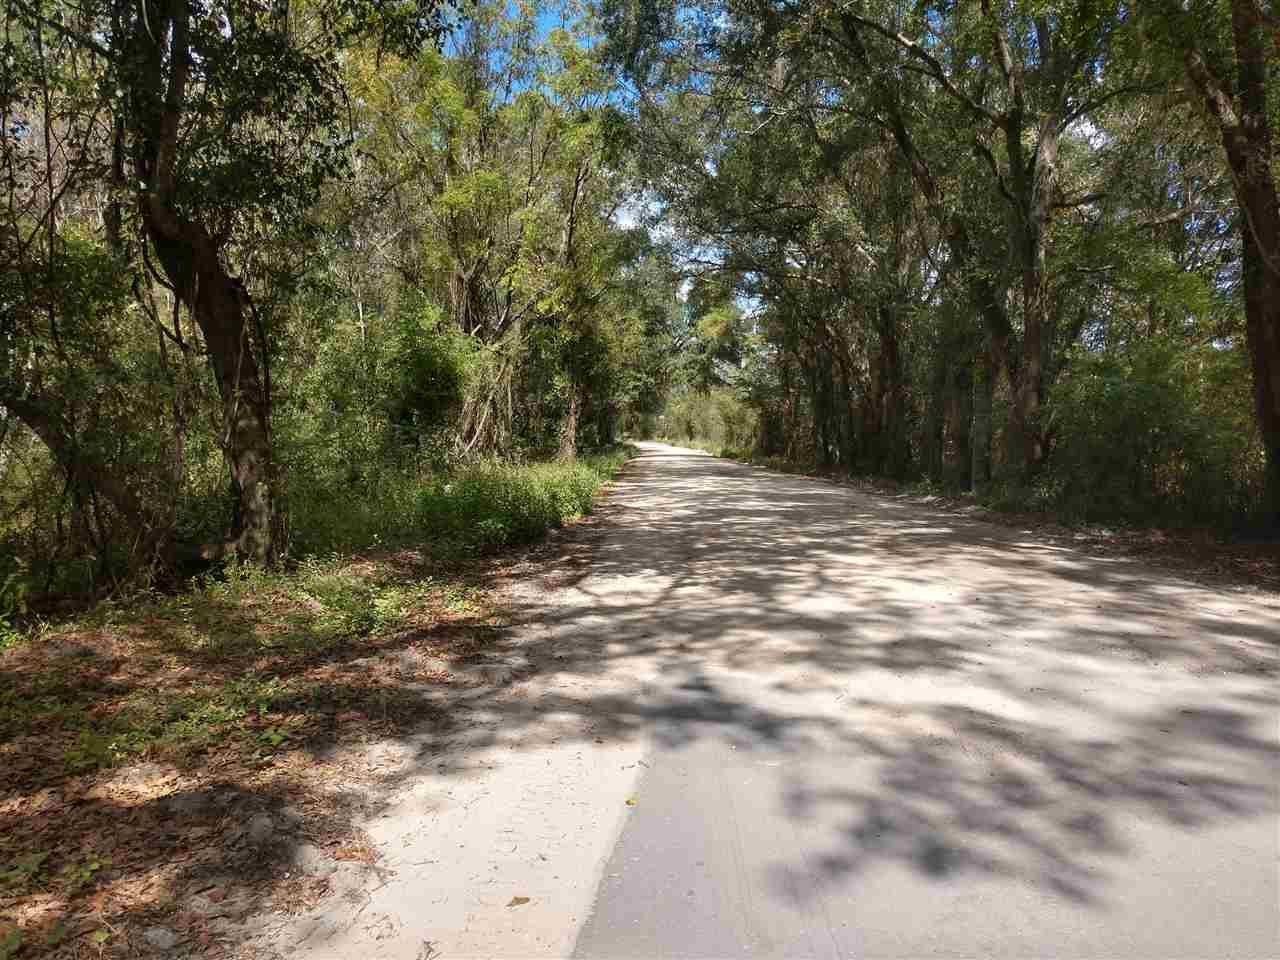 Great Investment Opportunity. Less than 10 minutes from the Spirit of the Suwannee River Music Park.  Beautiful wooded 38.5 acre lot in the town of Jasper, in North Florida. Clear out a spot to sit back and take in the gorgeous mature oak and pine canopy or clear cut and replant for an instant return. This lot would make a perfect place to build your dream home or subdivide and is conveniently located near I-75 in Hamilton County. An adjacent 1 acre parcel is also available for purchase.   This parcel is NOT in a flood zone buildable and allows 1 home per 2 acres. Access the property from two directions, paved road frontage.  Timber appraisal and Inventory report included. All timber and mineral rights included.  Property previously made passive income through billboard leases.